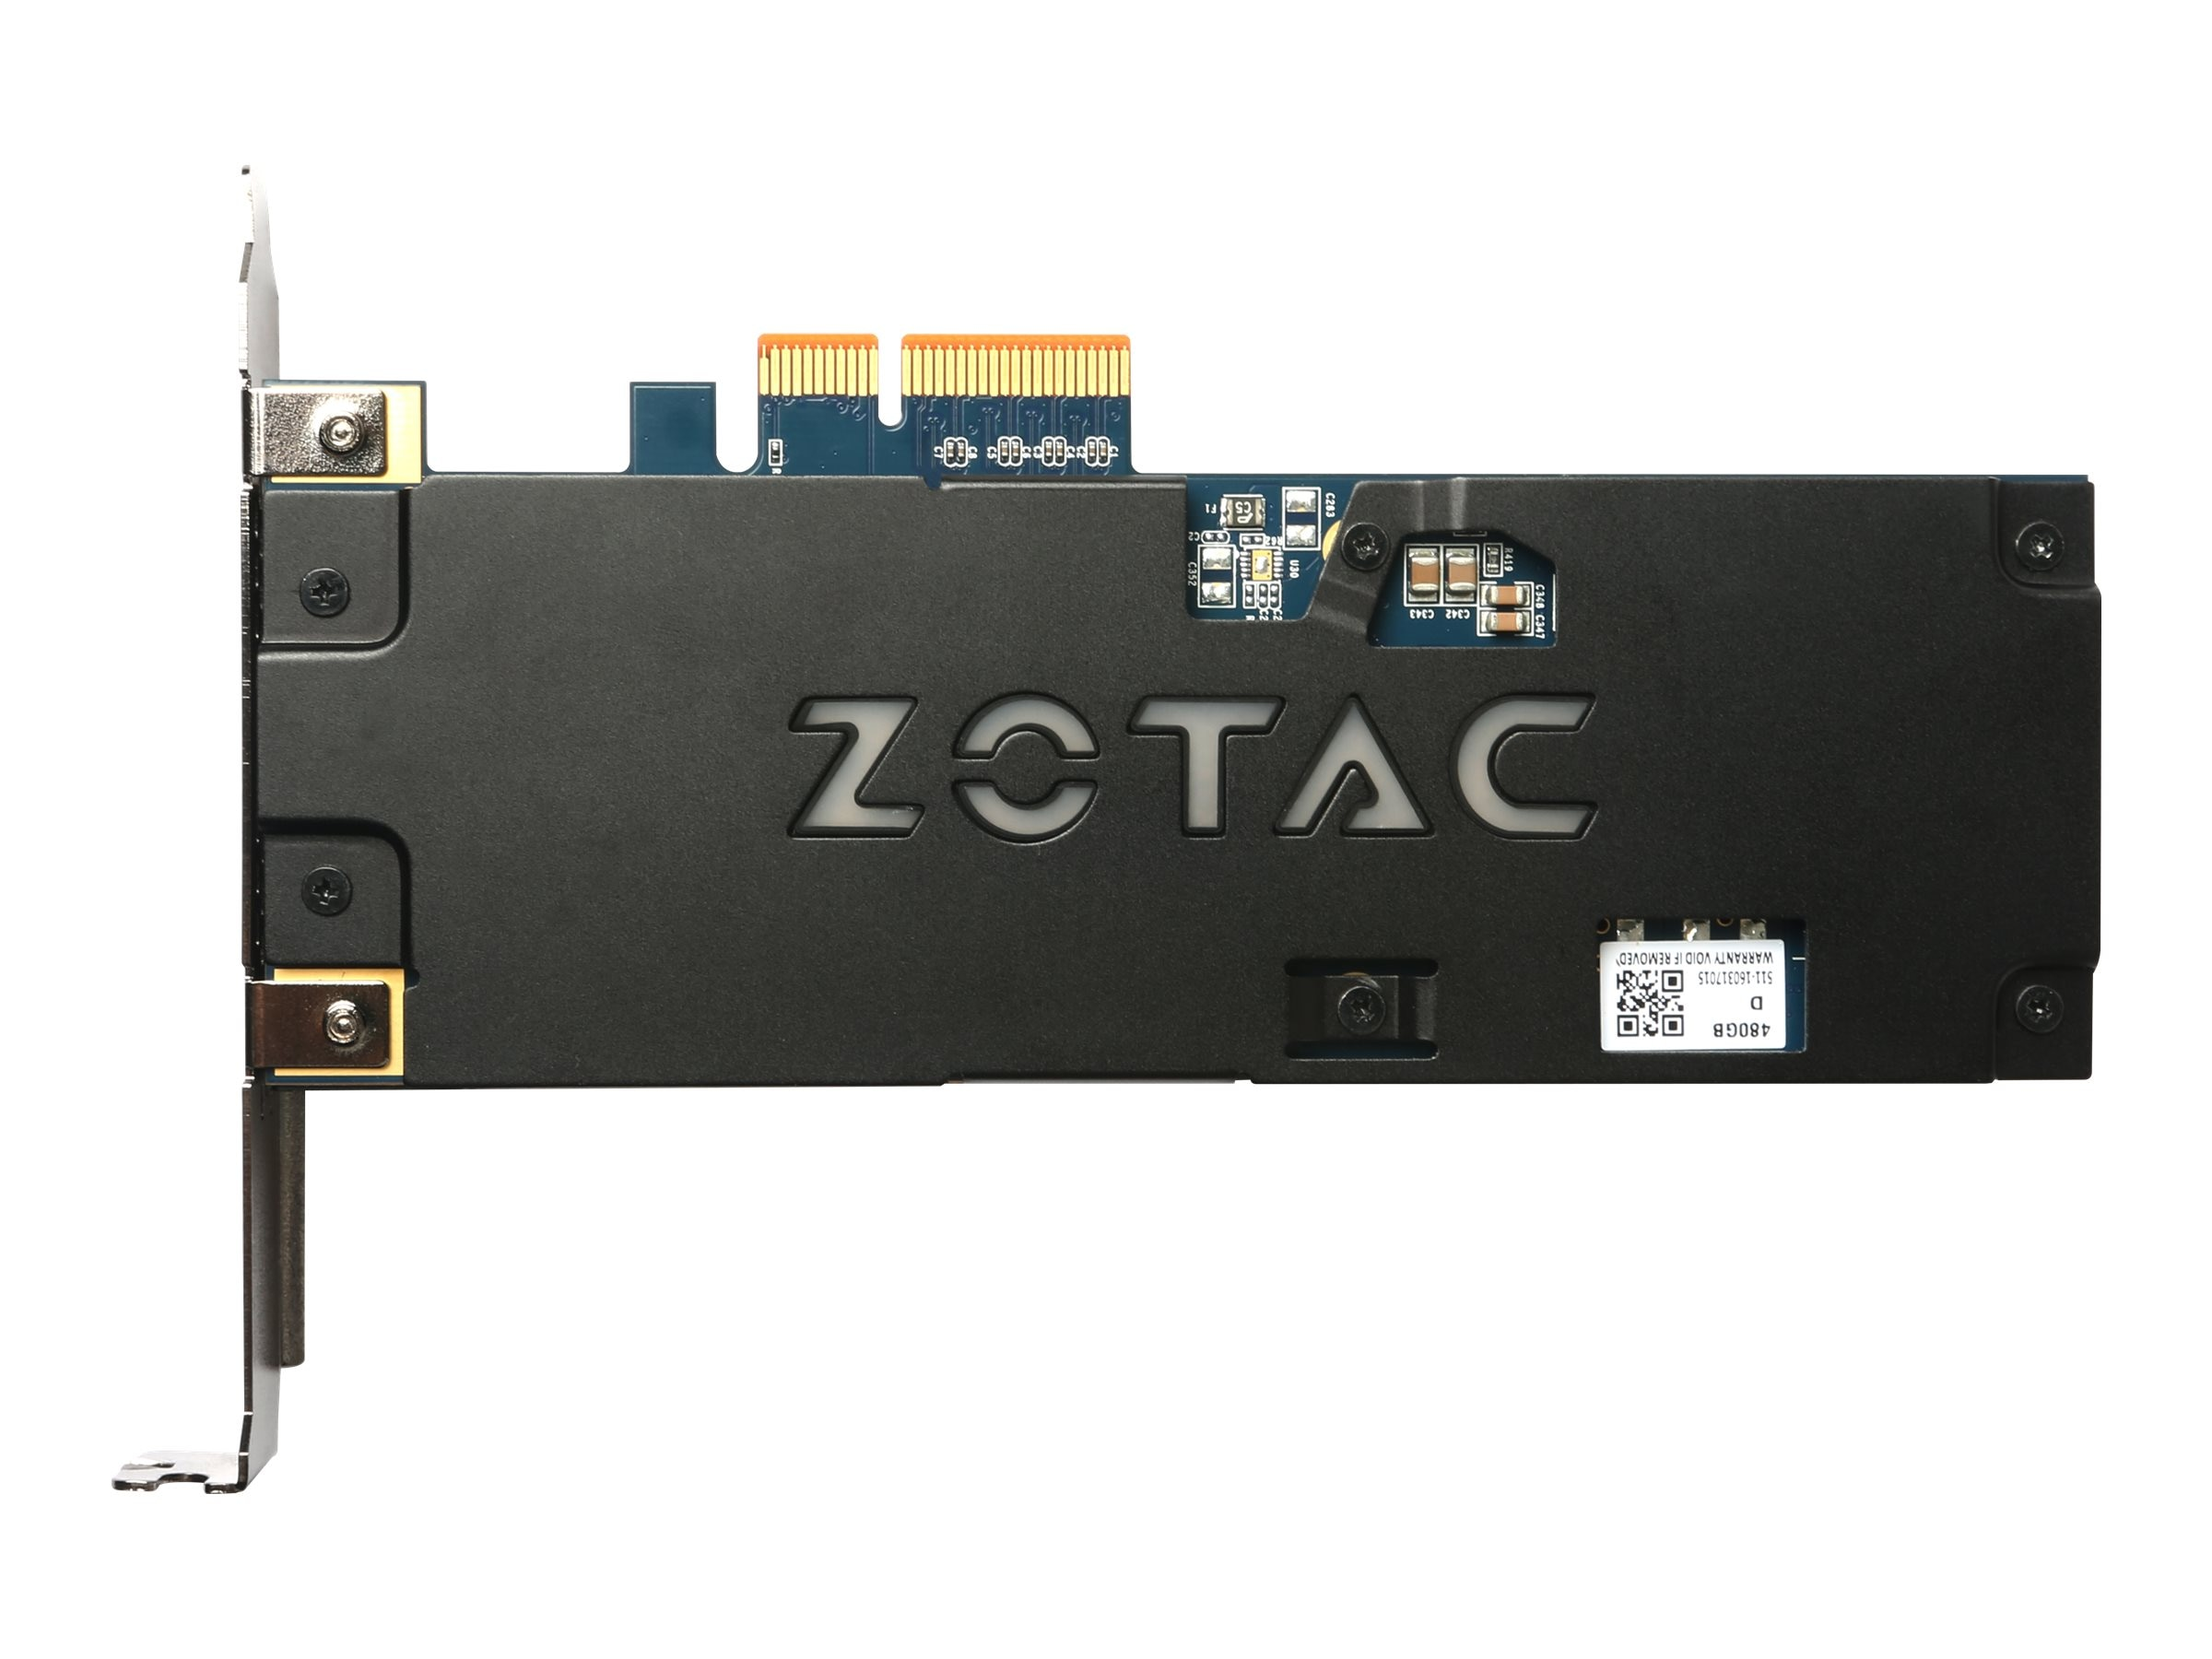 Zotac 480GB Sonix LED PCIe Solid State Drive - Zotac 10th Anniversary, ZTSSD-PG3-480G-LED